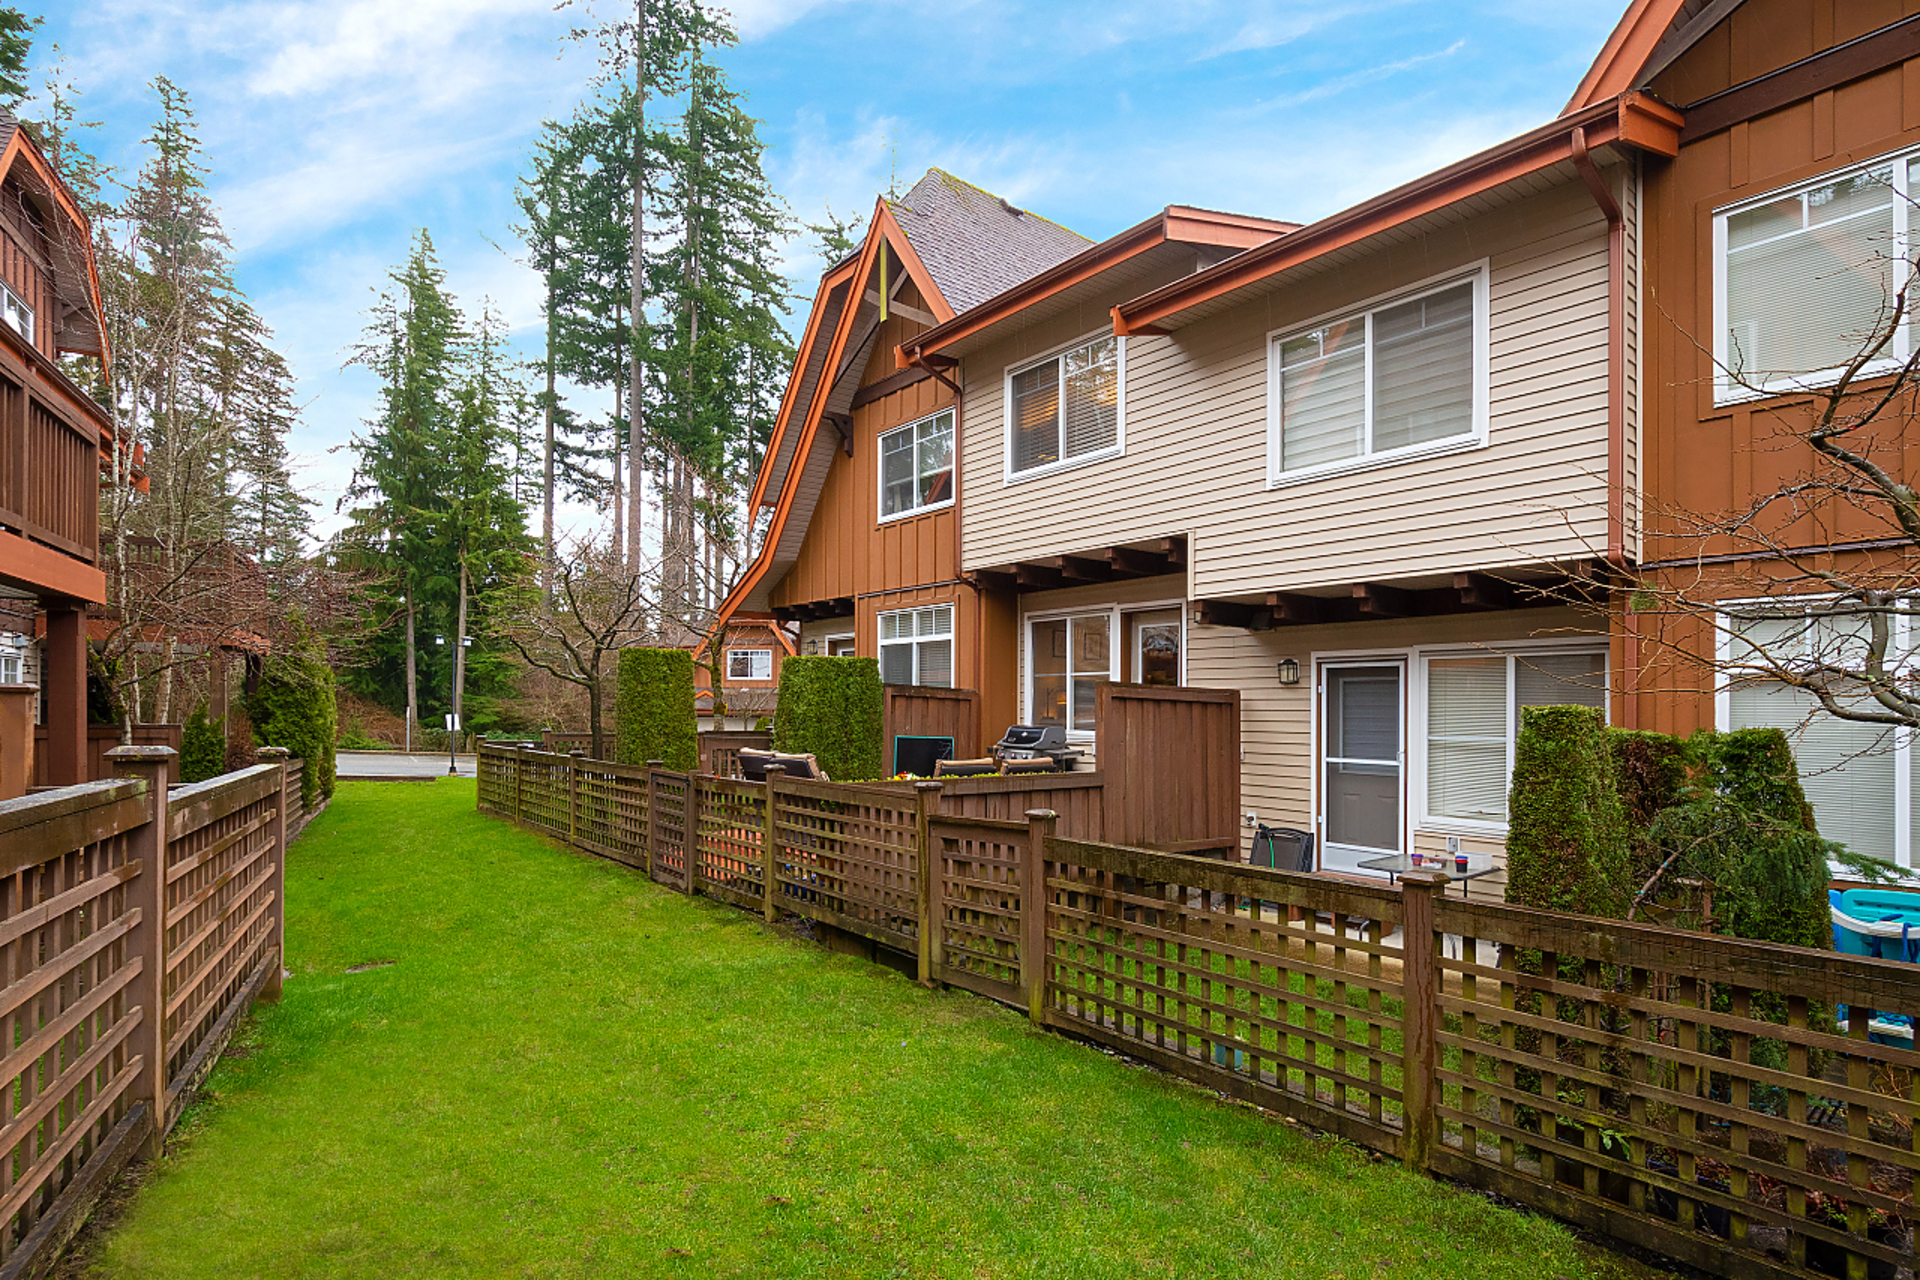 024 at 125 - 2000 Panorama Drive, Heritage Woods PM, Port Moody